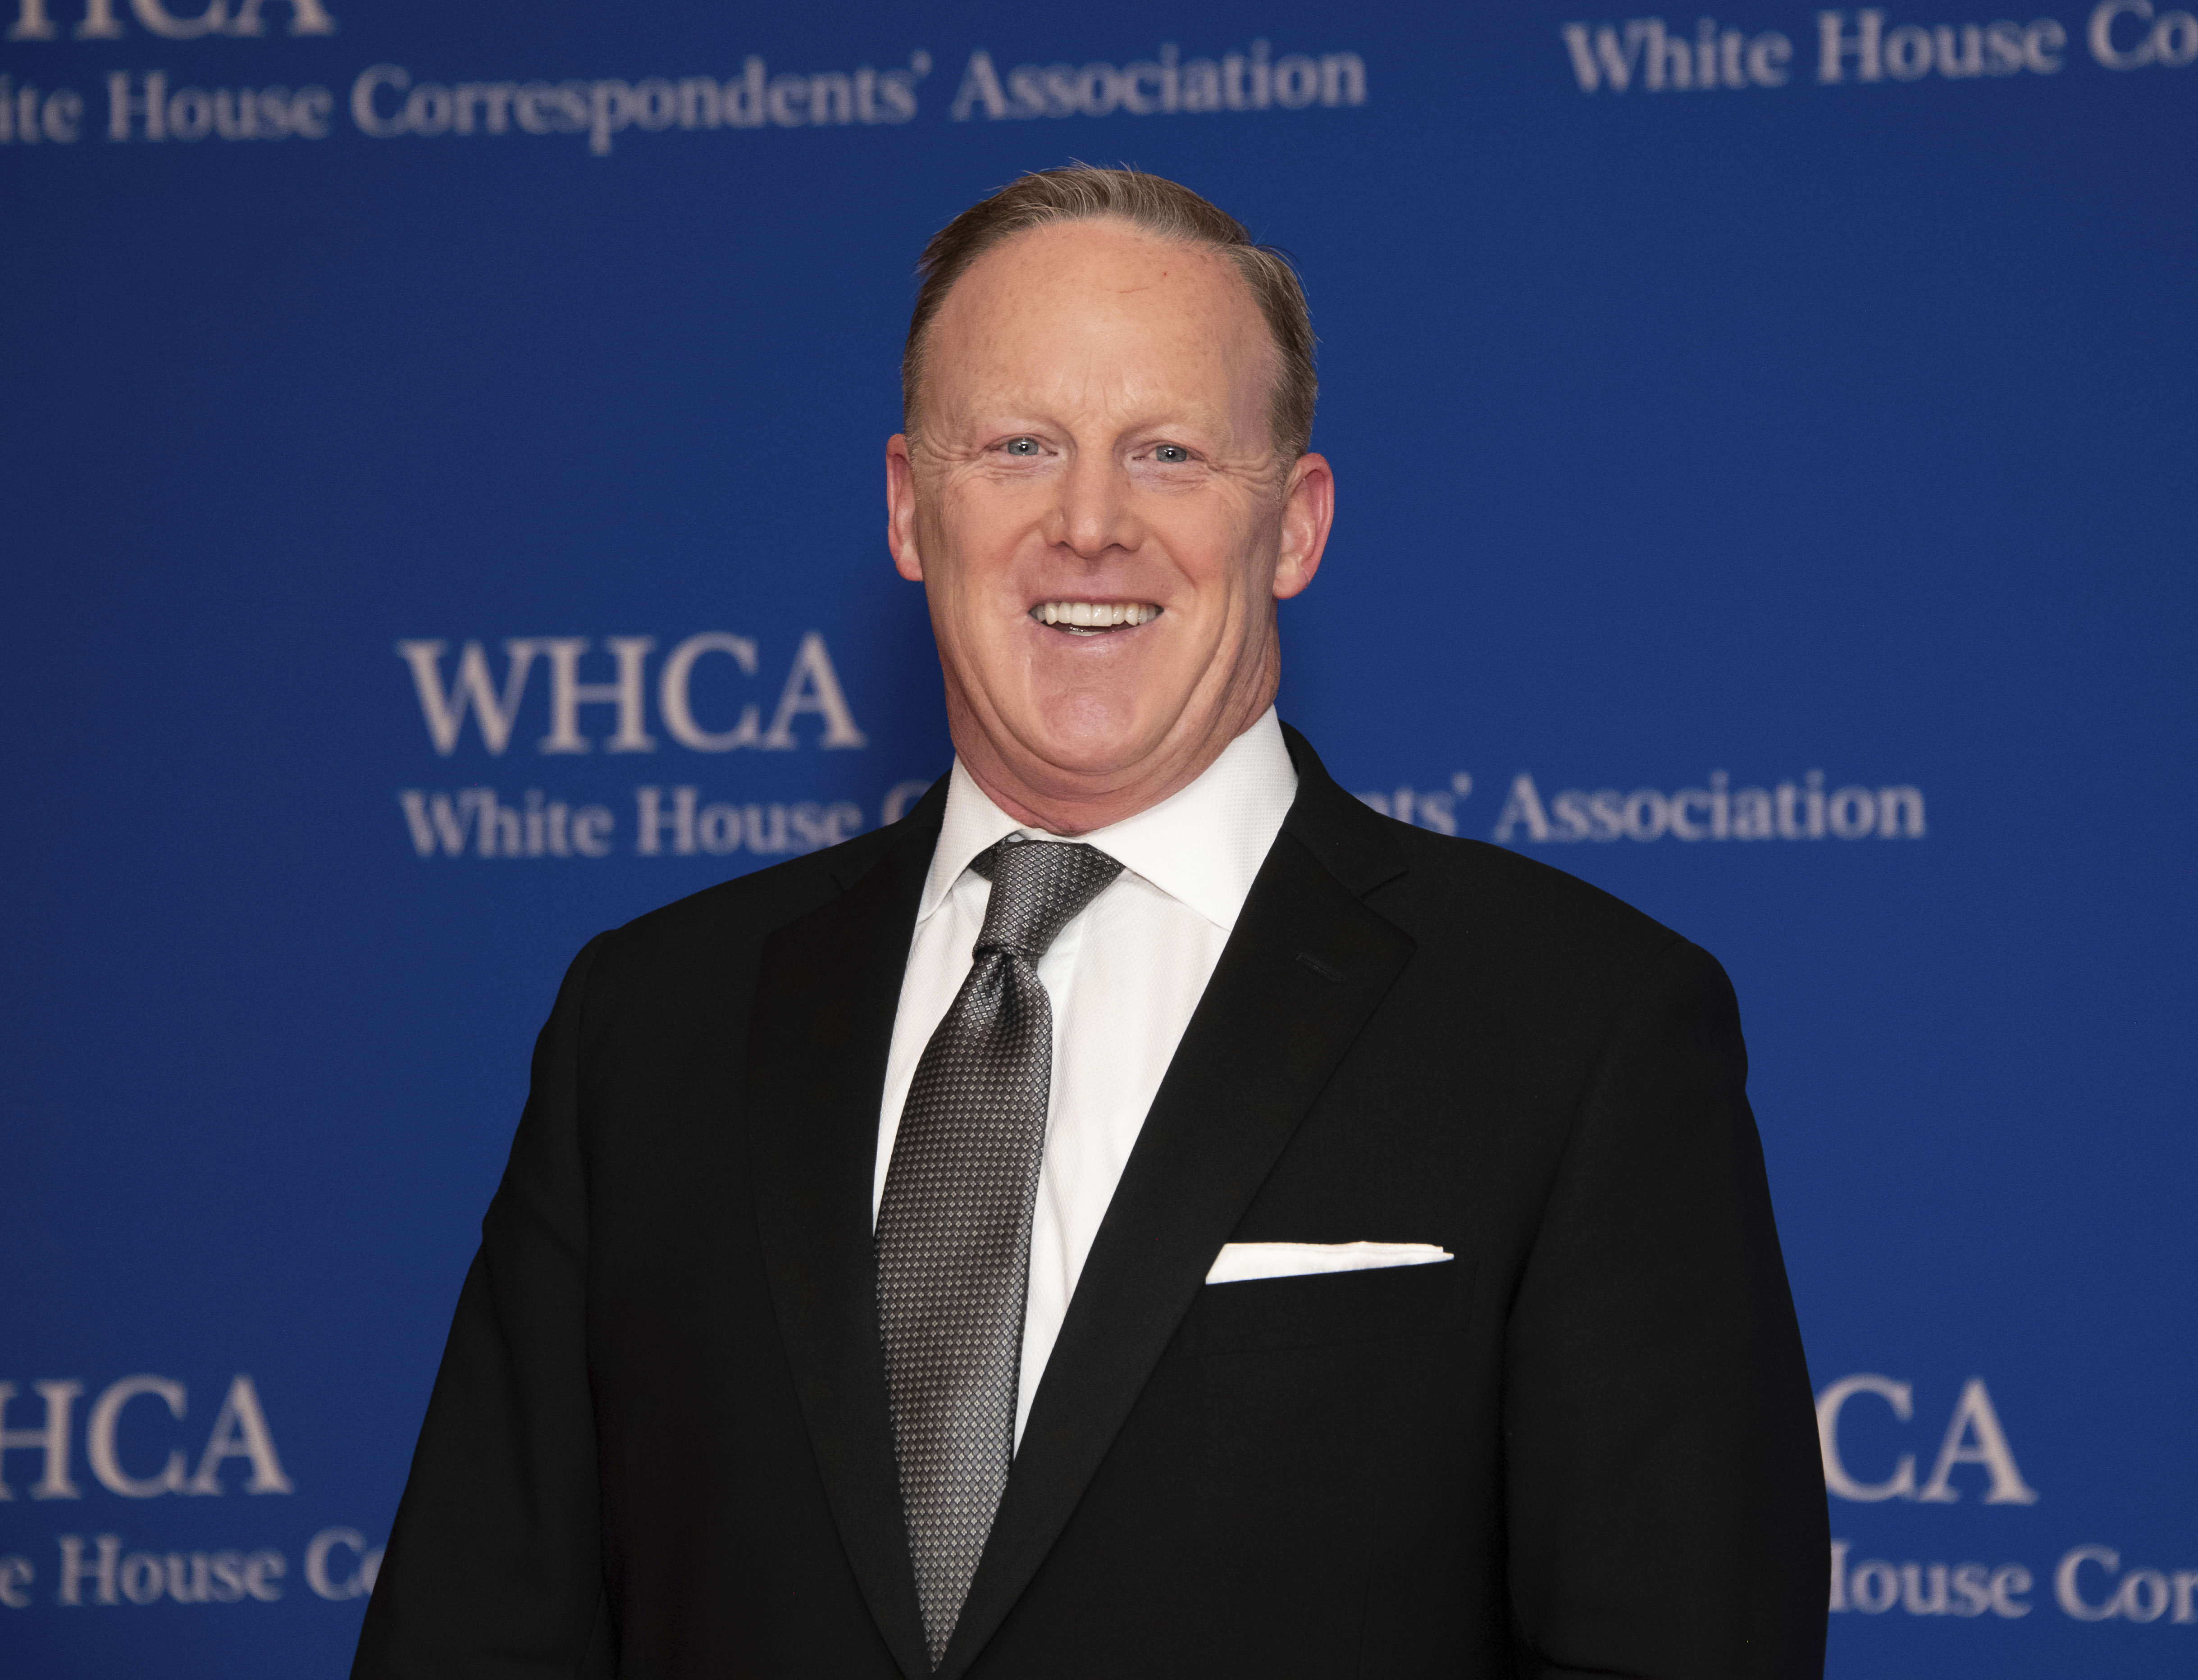 Sean Spicer attends the 2019 White House Correspondents' Association dinner at the Washington Hilton on Saturday April 27, 2019, in Washington. (Photo by Charles Sykes/Invision/AP)